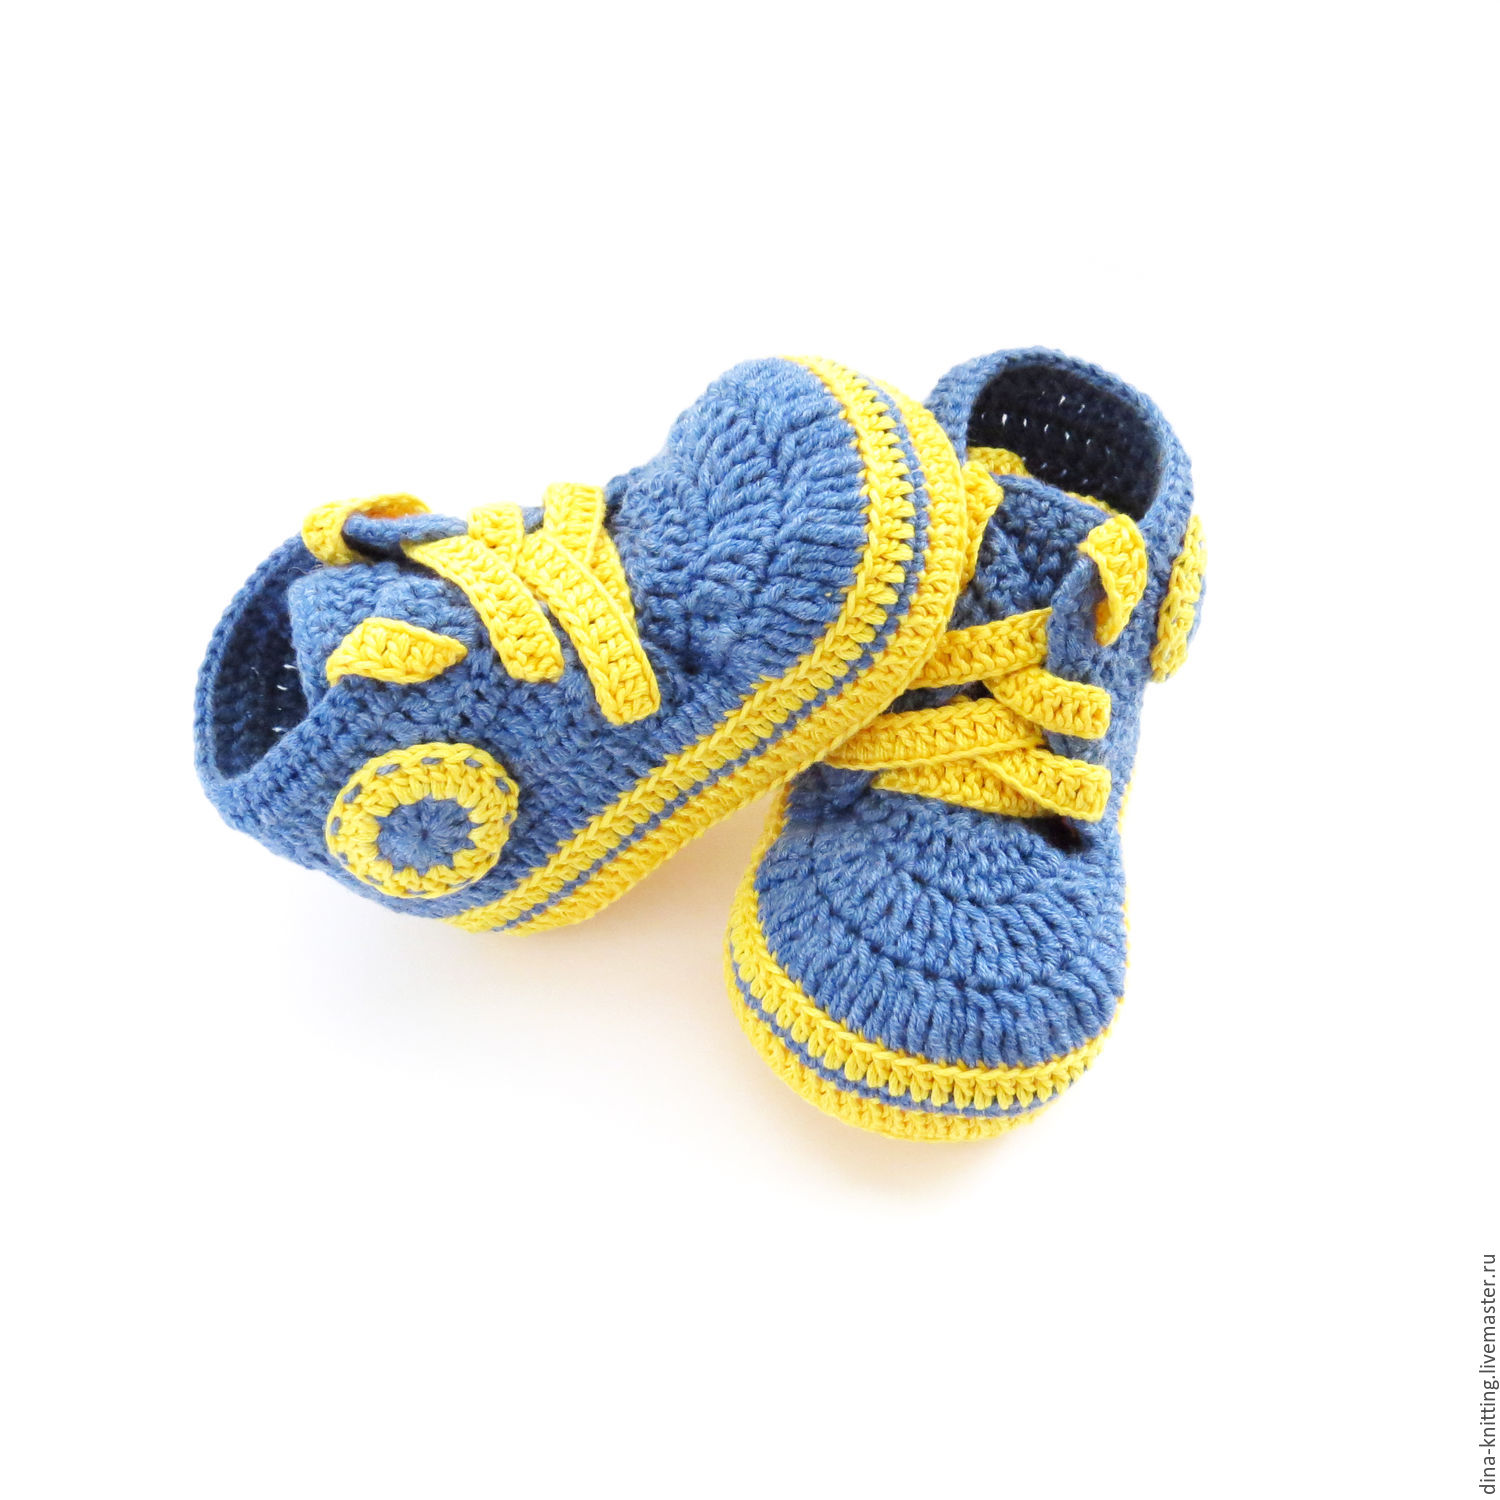 booties shoes knitted baby booties shoes booties for baby boy